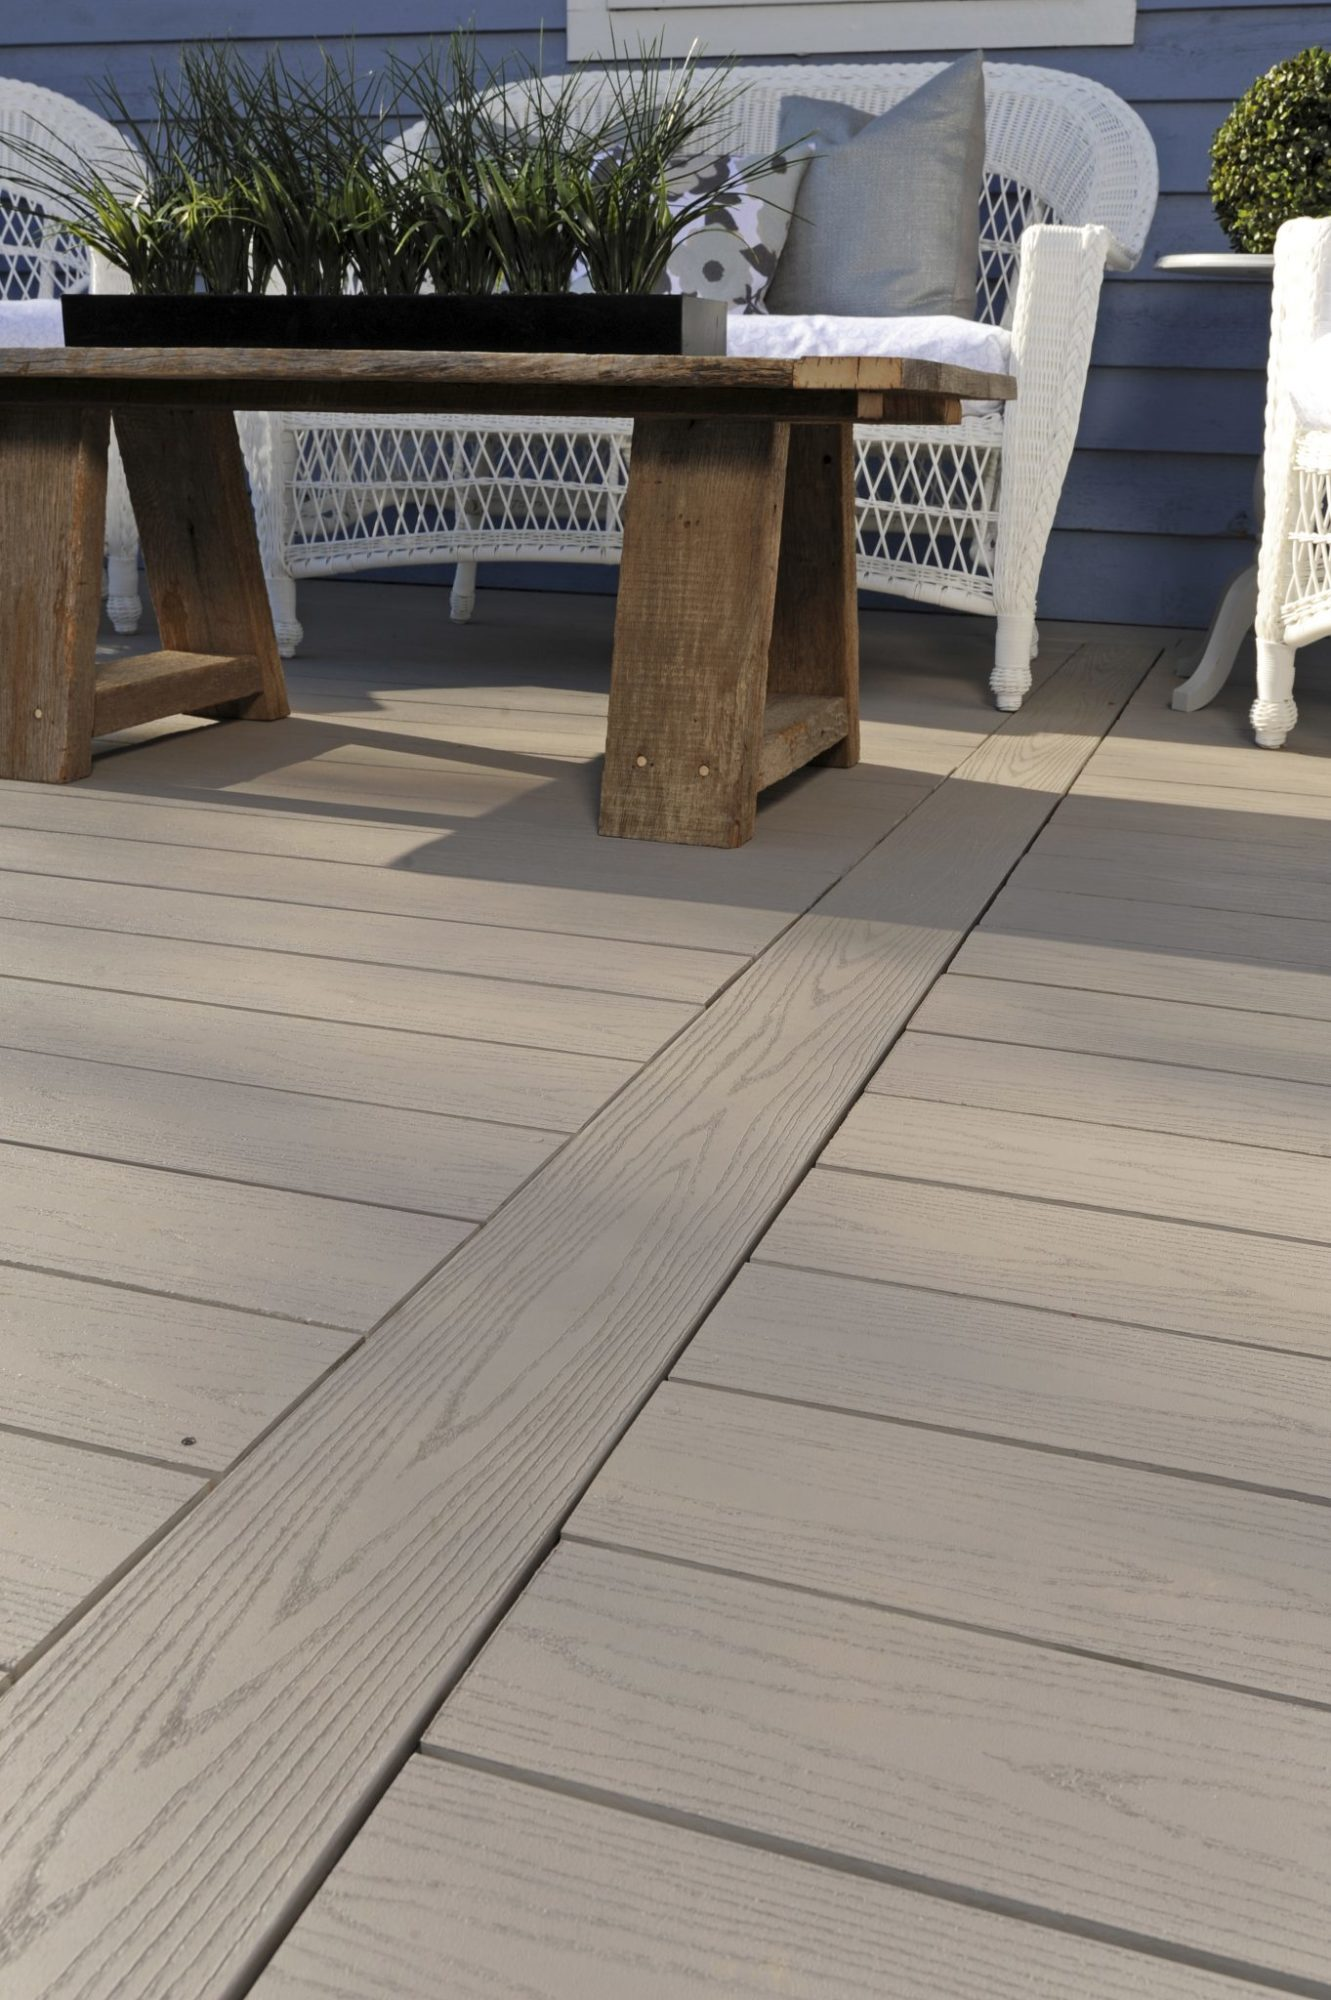 TimberTech AZEK Capped Polymer Decking vs. Wood – Which is Better?